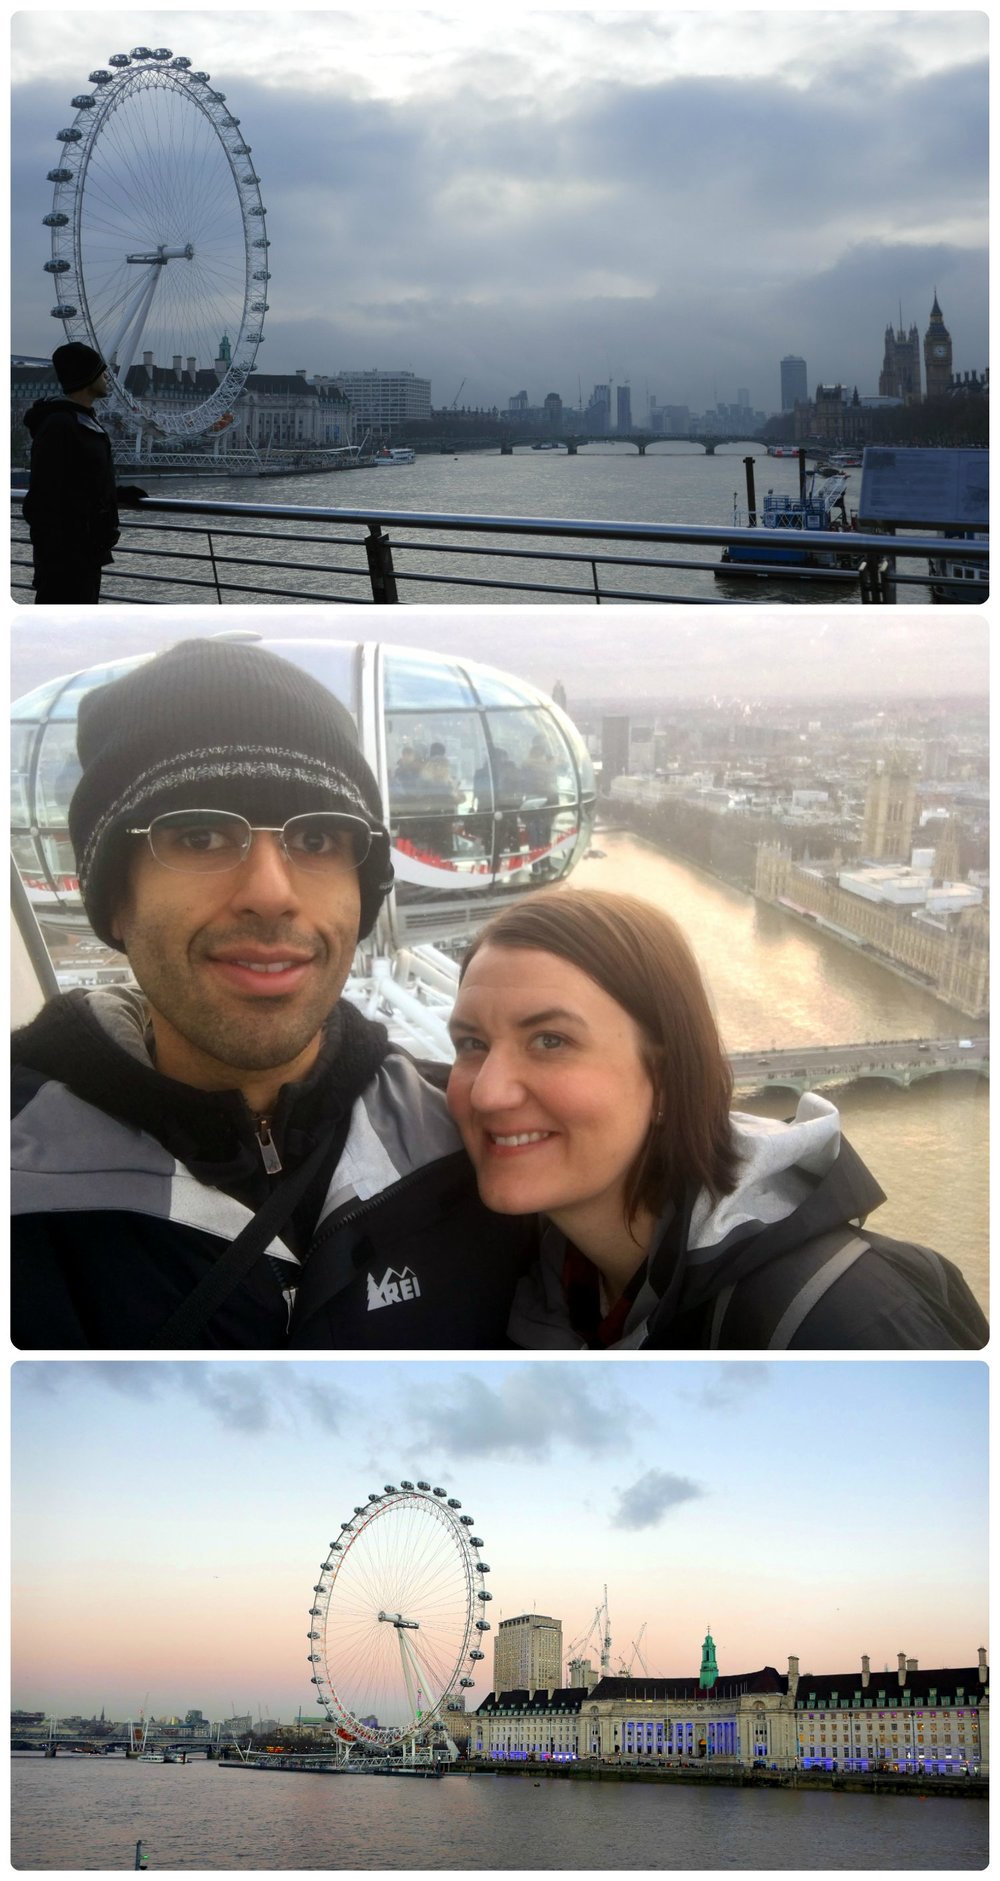 The famous London Eye.